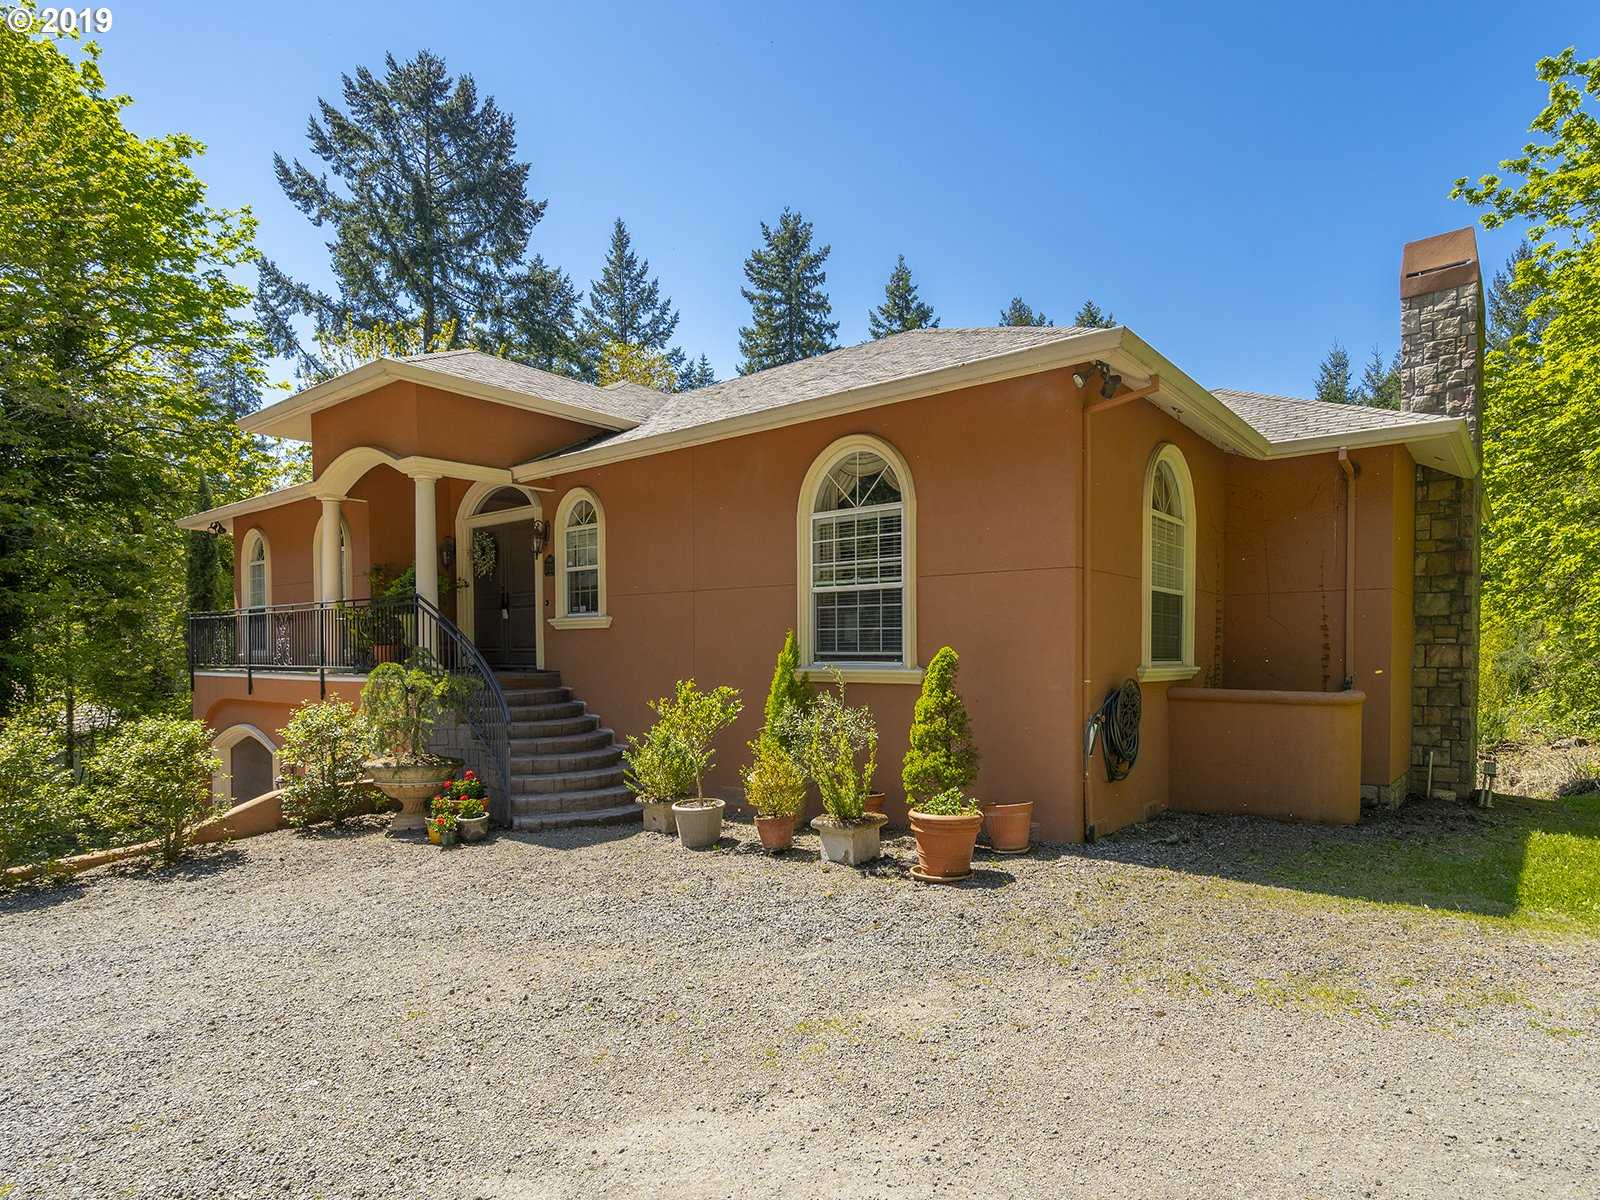 $830,000 - 3Br/3Ba -  for Sale in Bull Mountain, Tigard